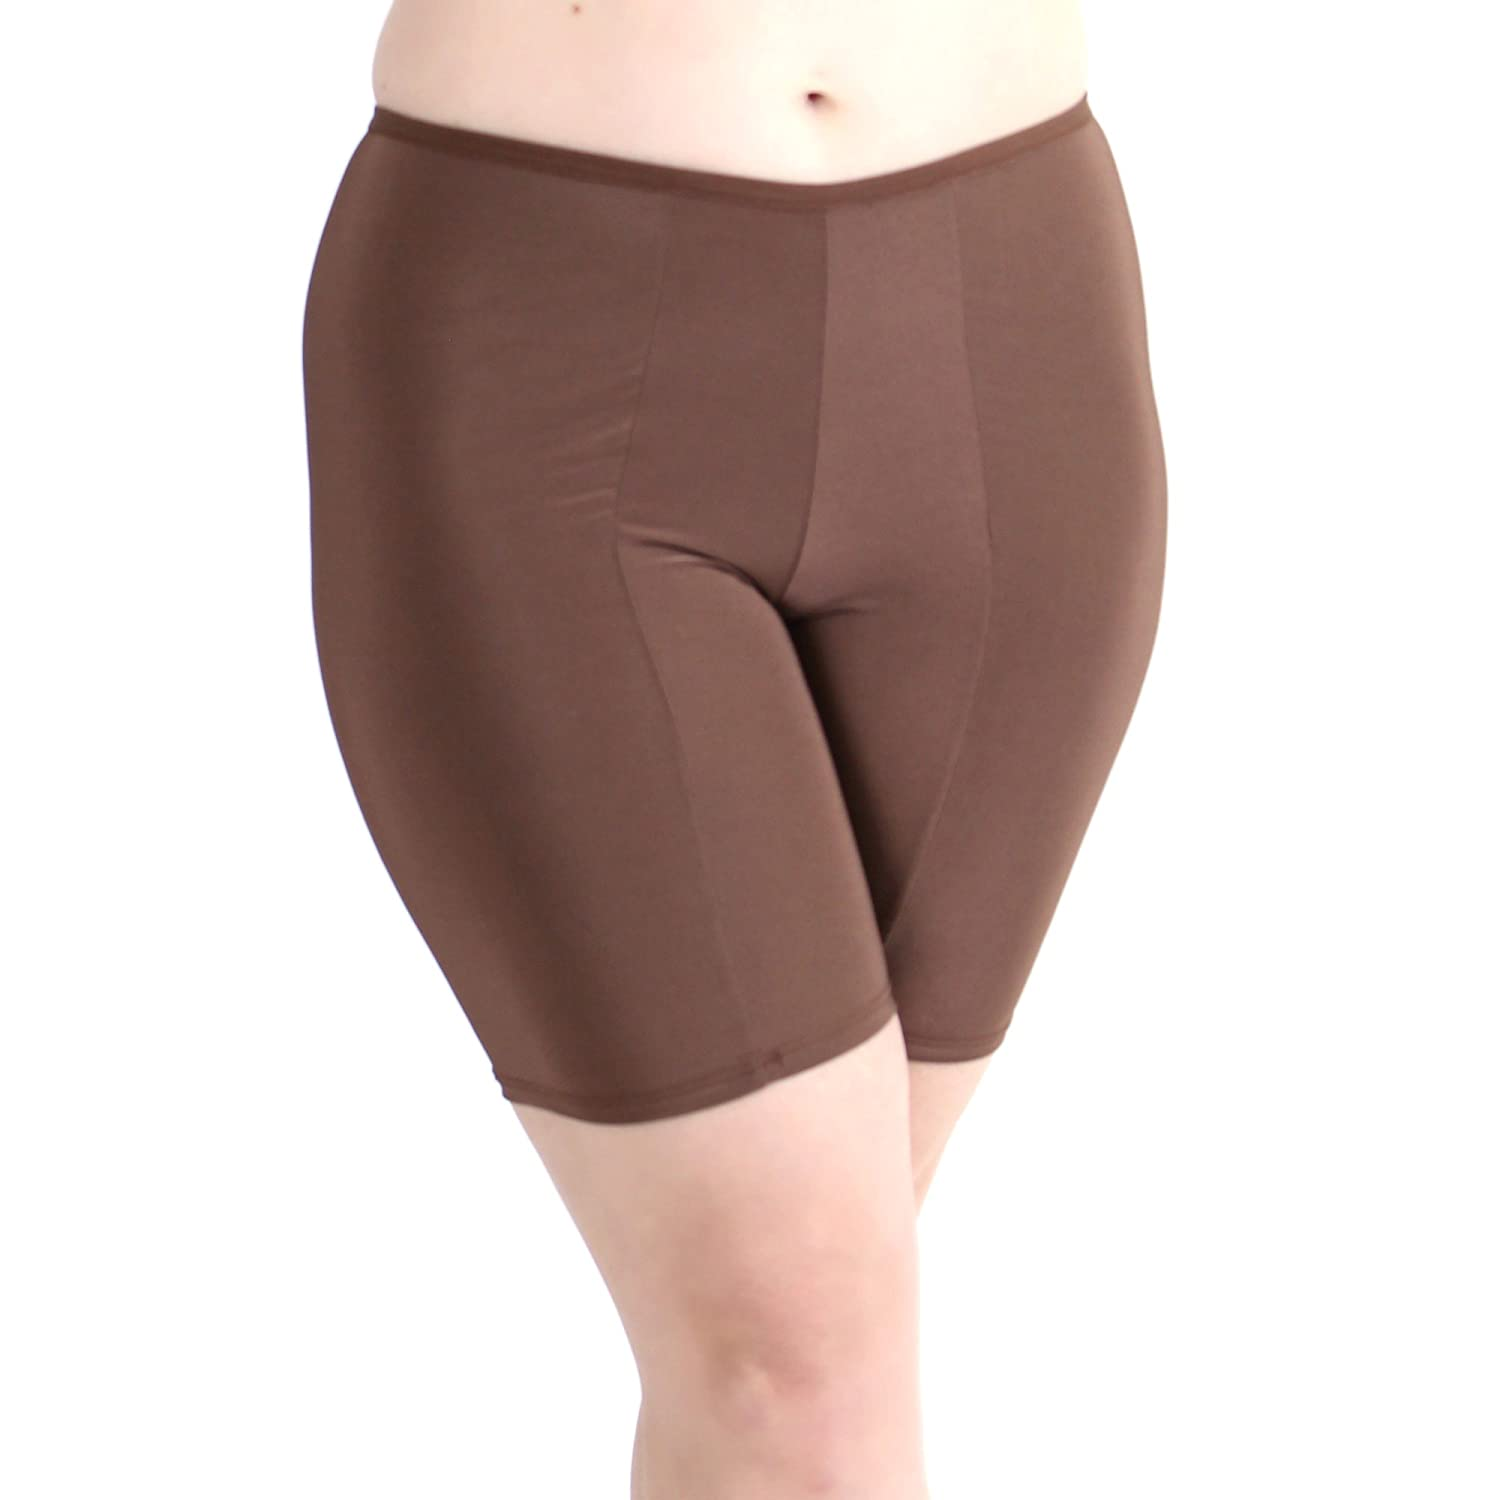 Prevent Thigh Chafing with Stay-Put Mid-Thigh Length Undersummers Womens Ultrasoft Classic Slip Shorts S-4X